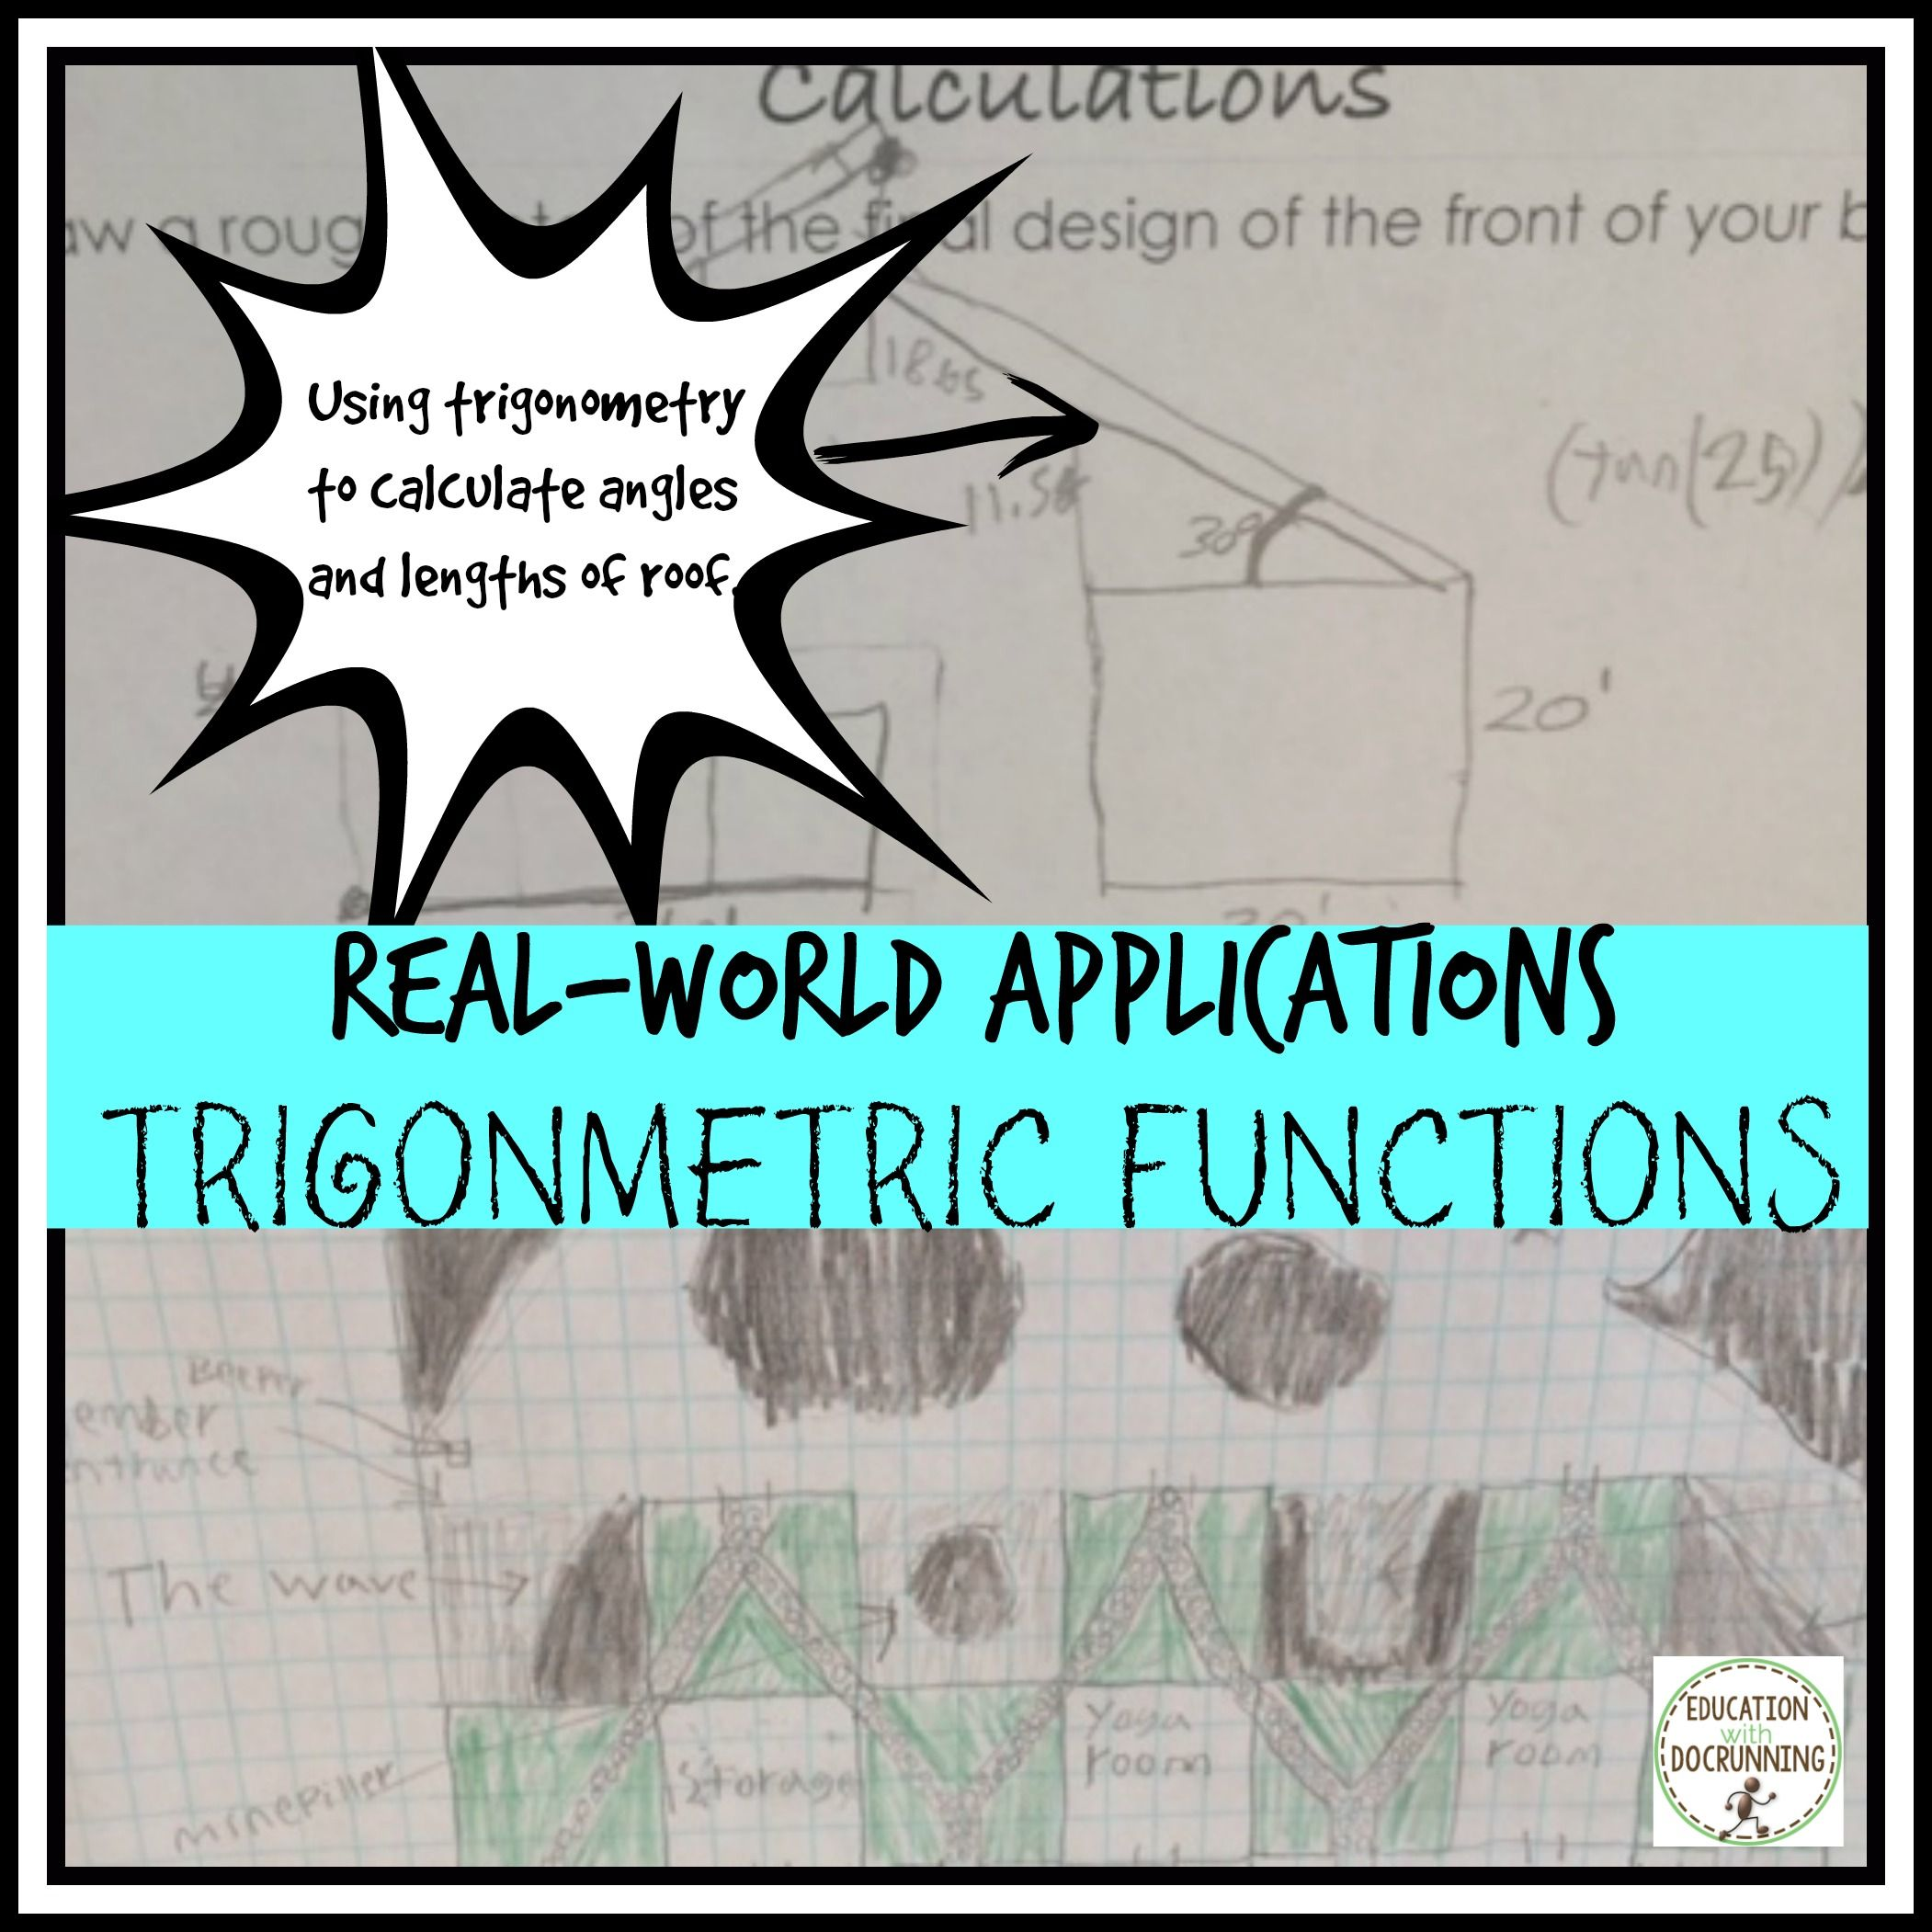 Trigonometric Functions Architecture Project for Real-World ...